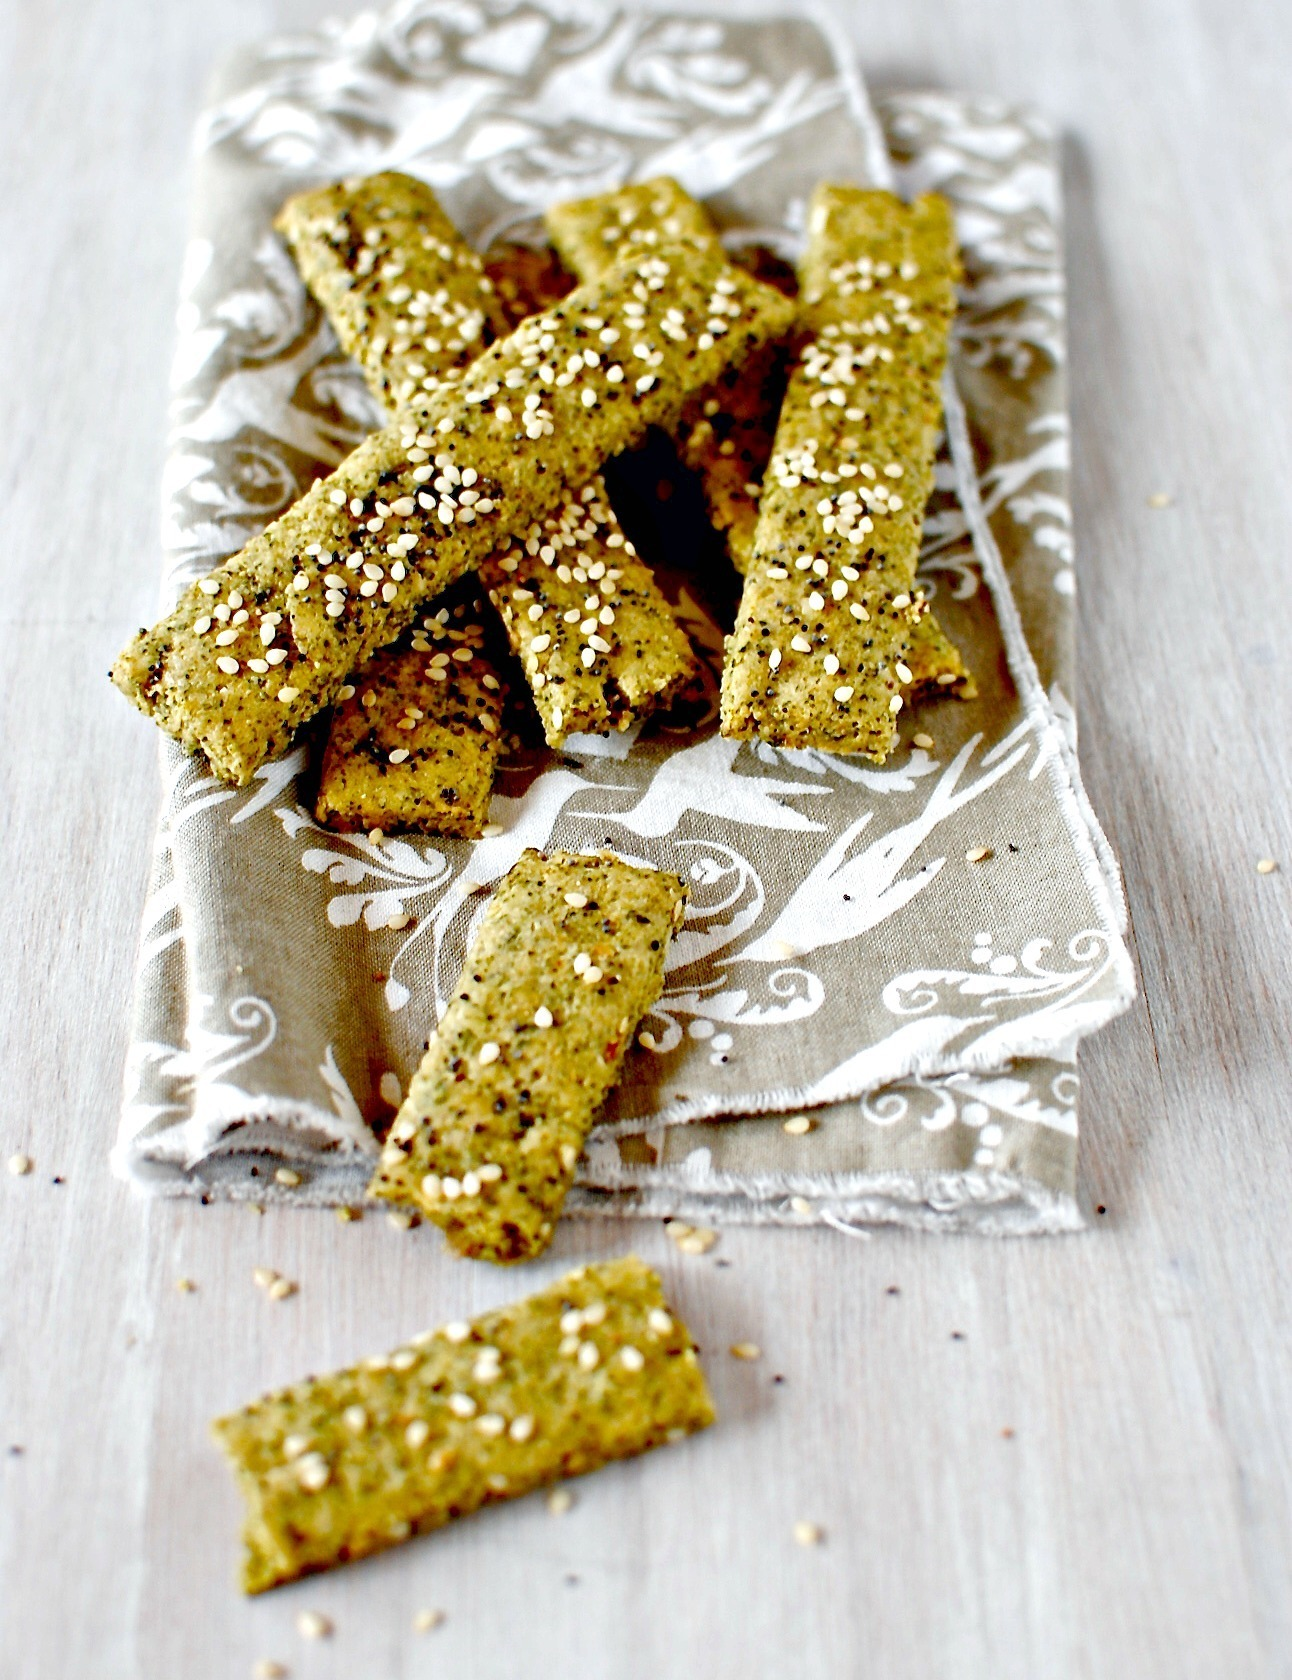 Herbes de Provence Seed and Nut Crackers {grain-free/easily vegan}